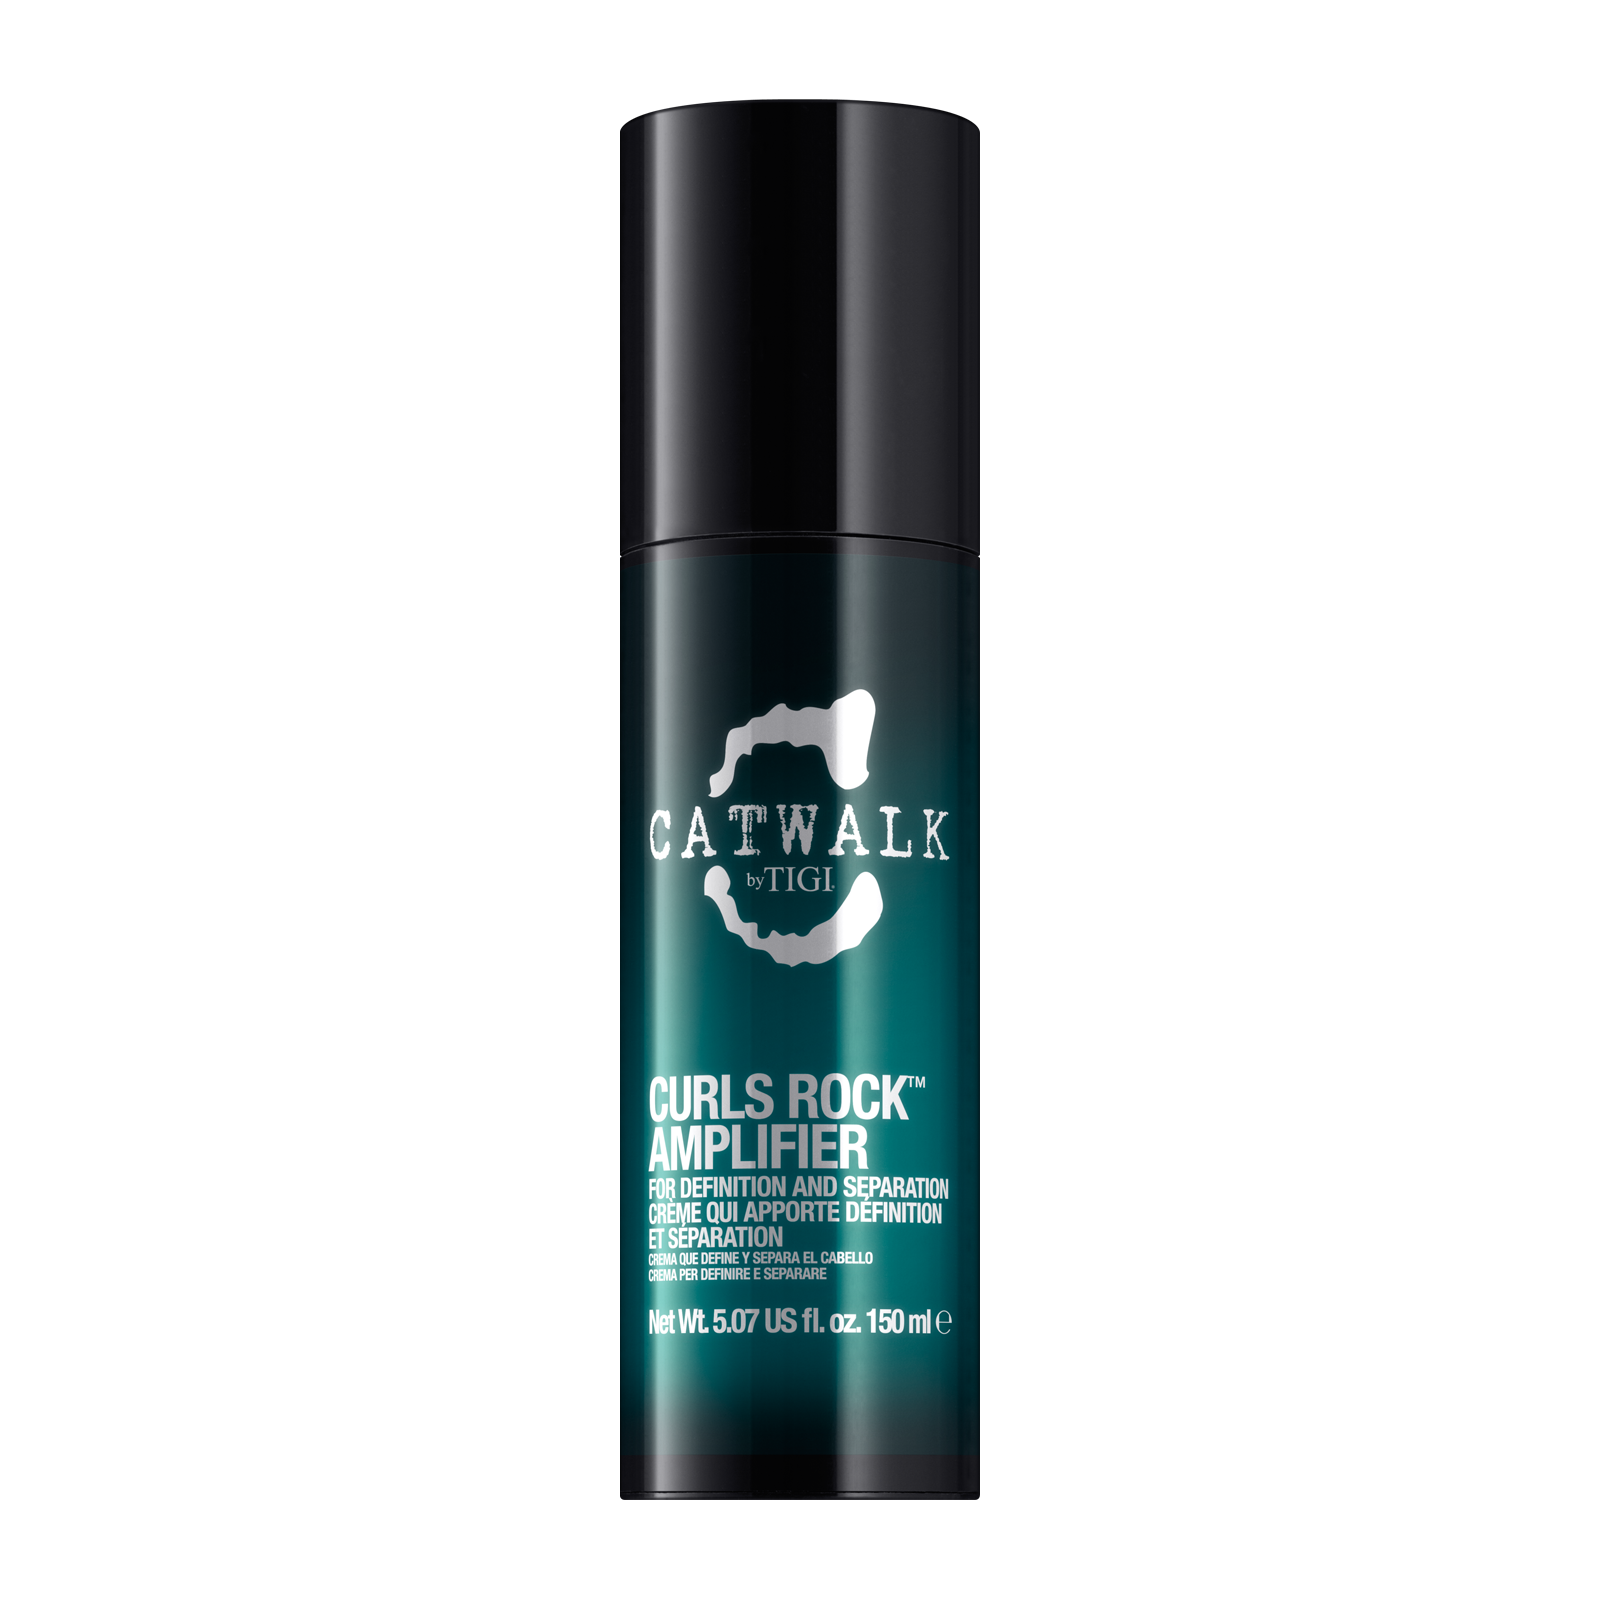 catwalk by tigi curls rock amplifier